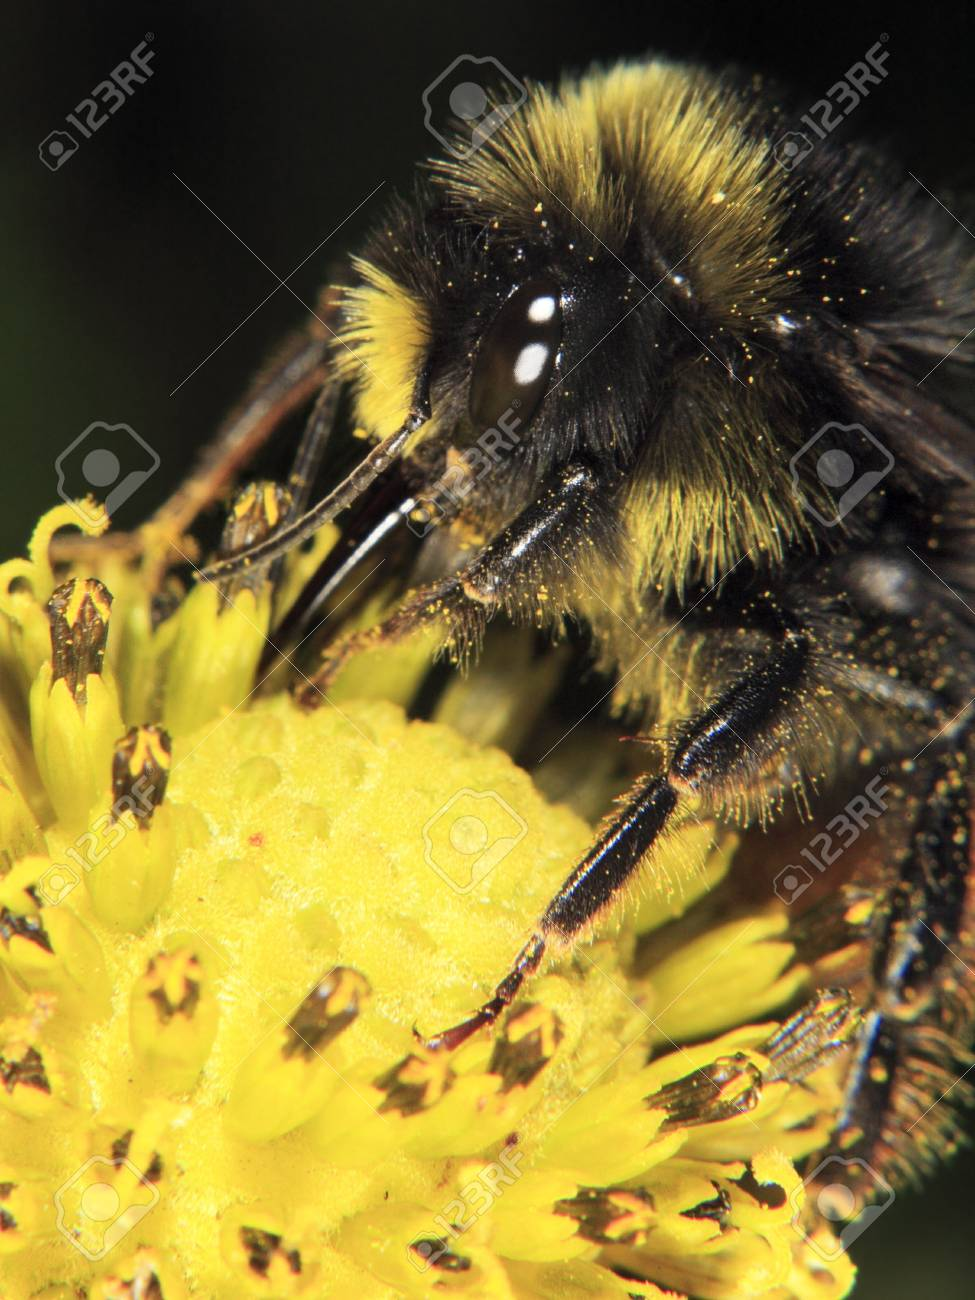 Bumblebee on yellow flower close up Stock Photo - 10227054